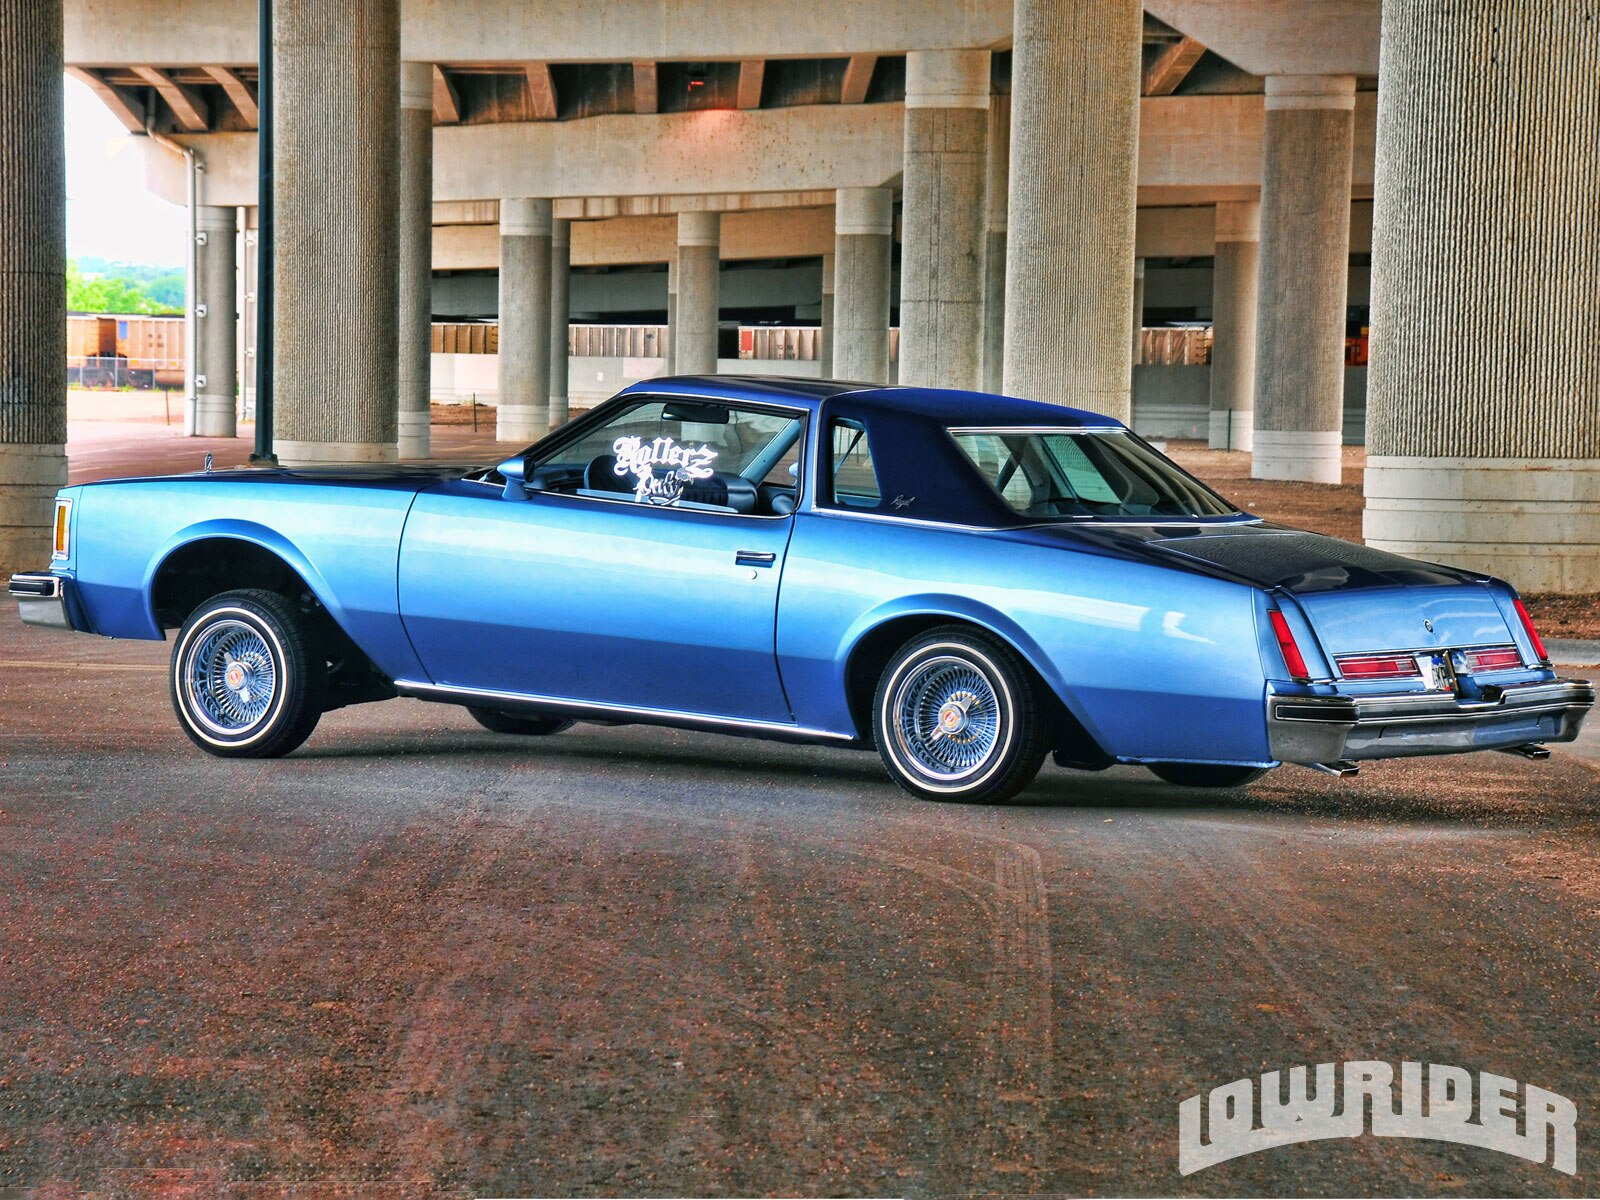 1206-lrmp-01-o-1977-buick-regal-driver-side-view1